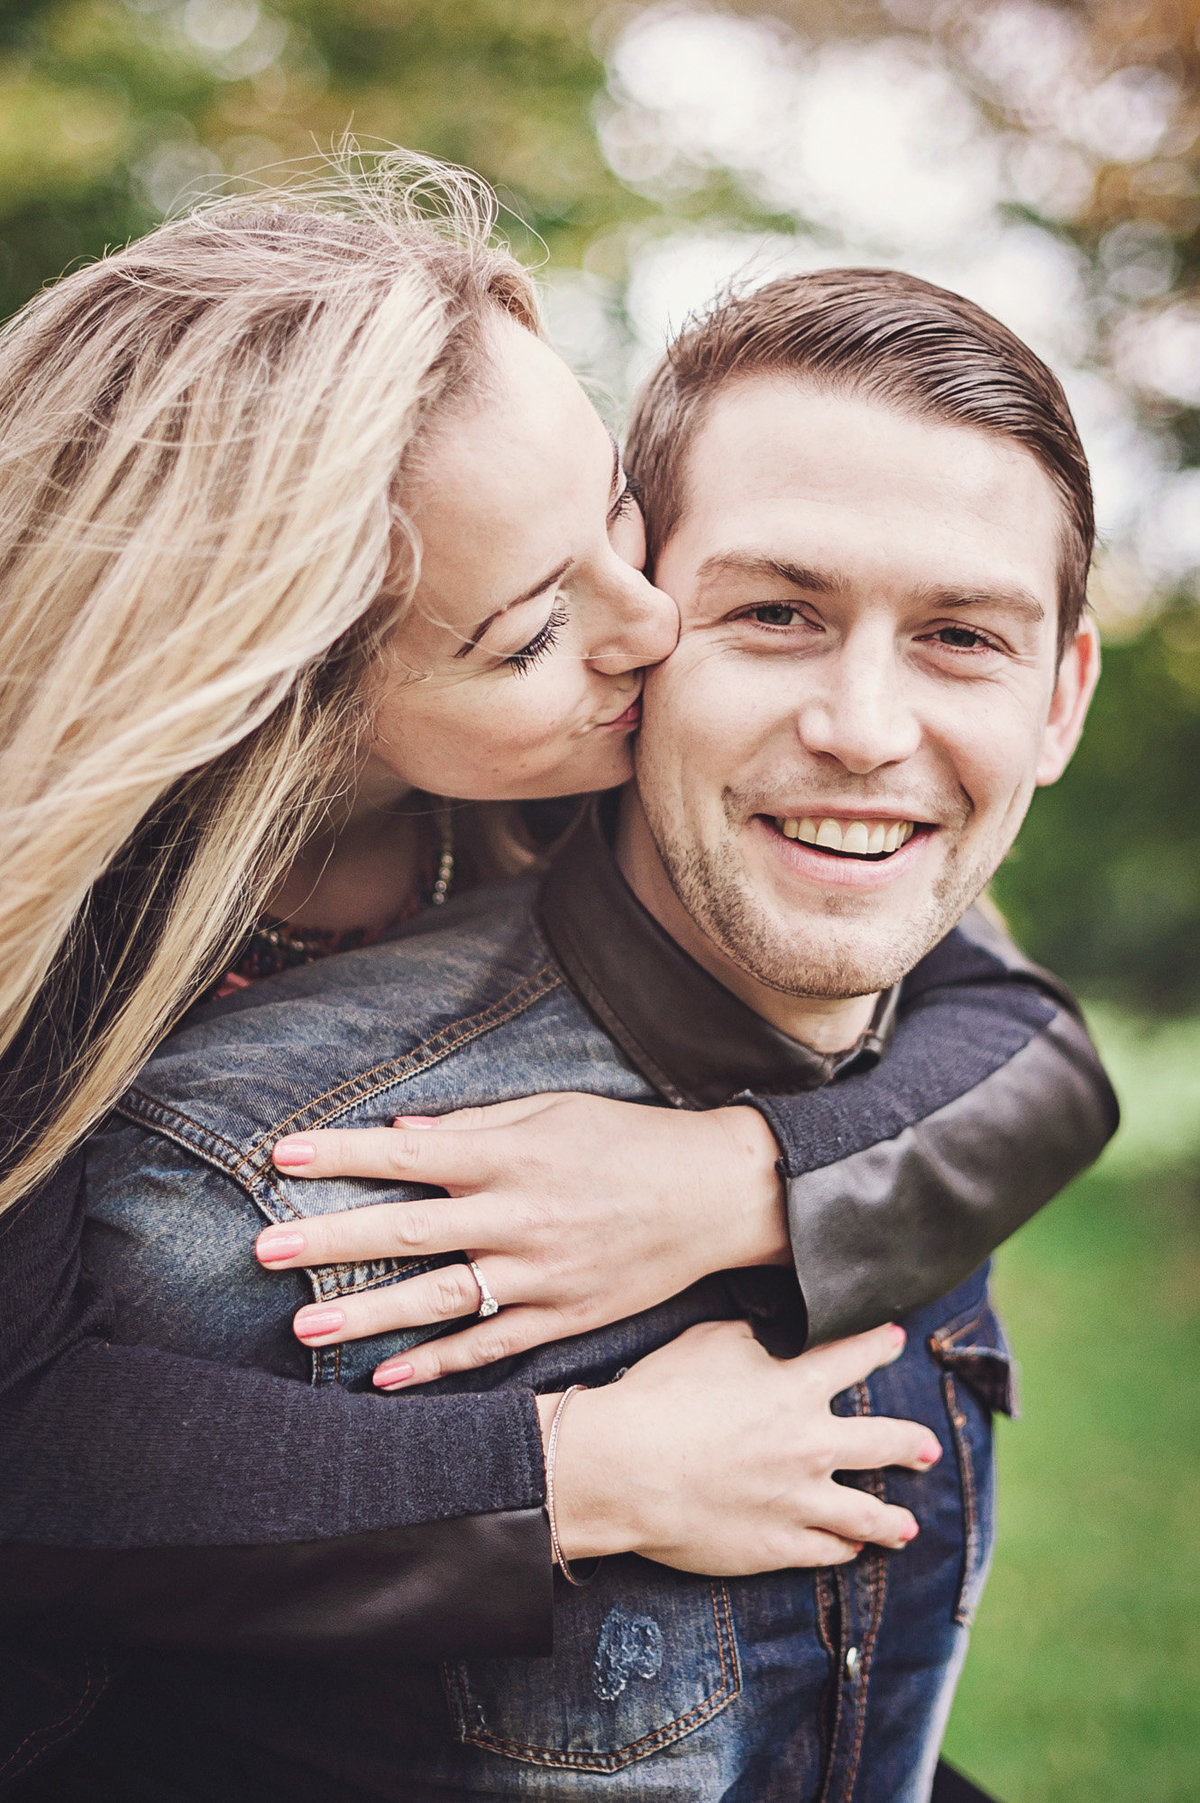 Engagement photography hertfordshire buckinghamshire london uk (25 of 34)